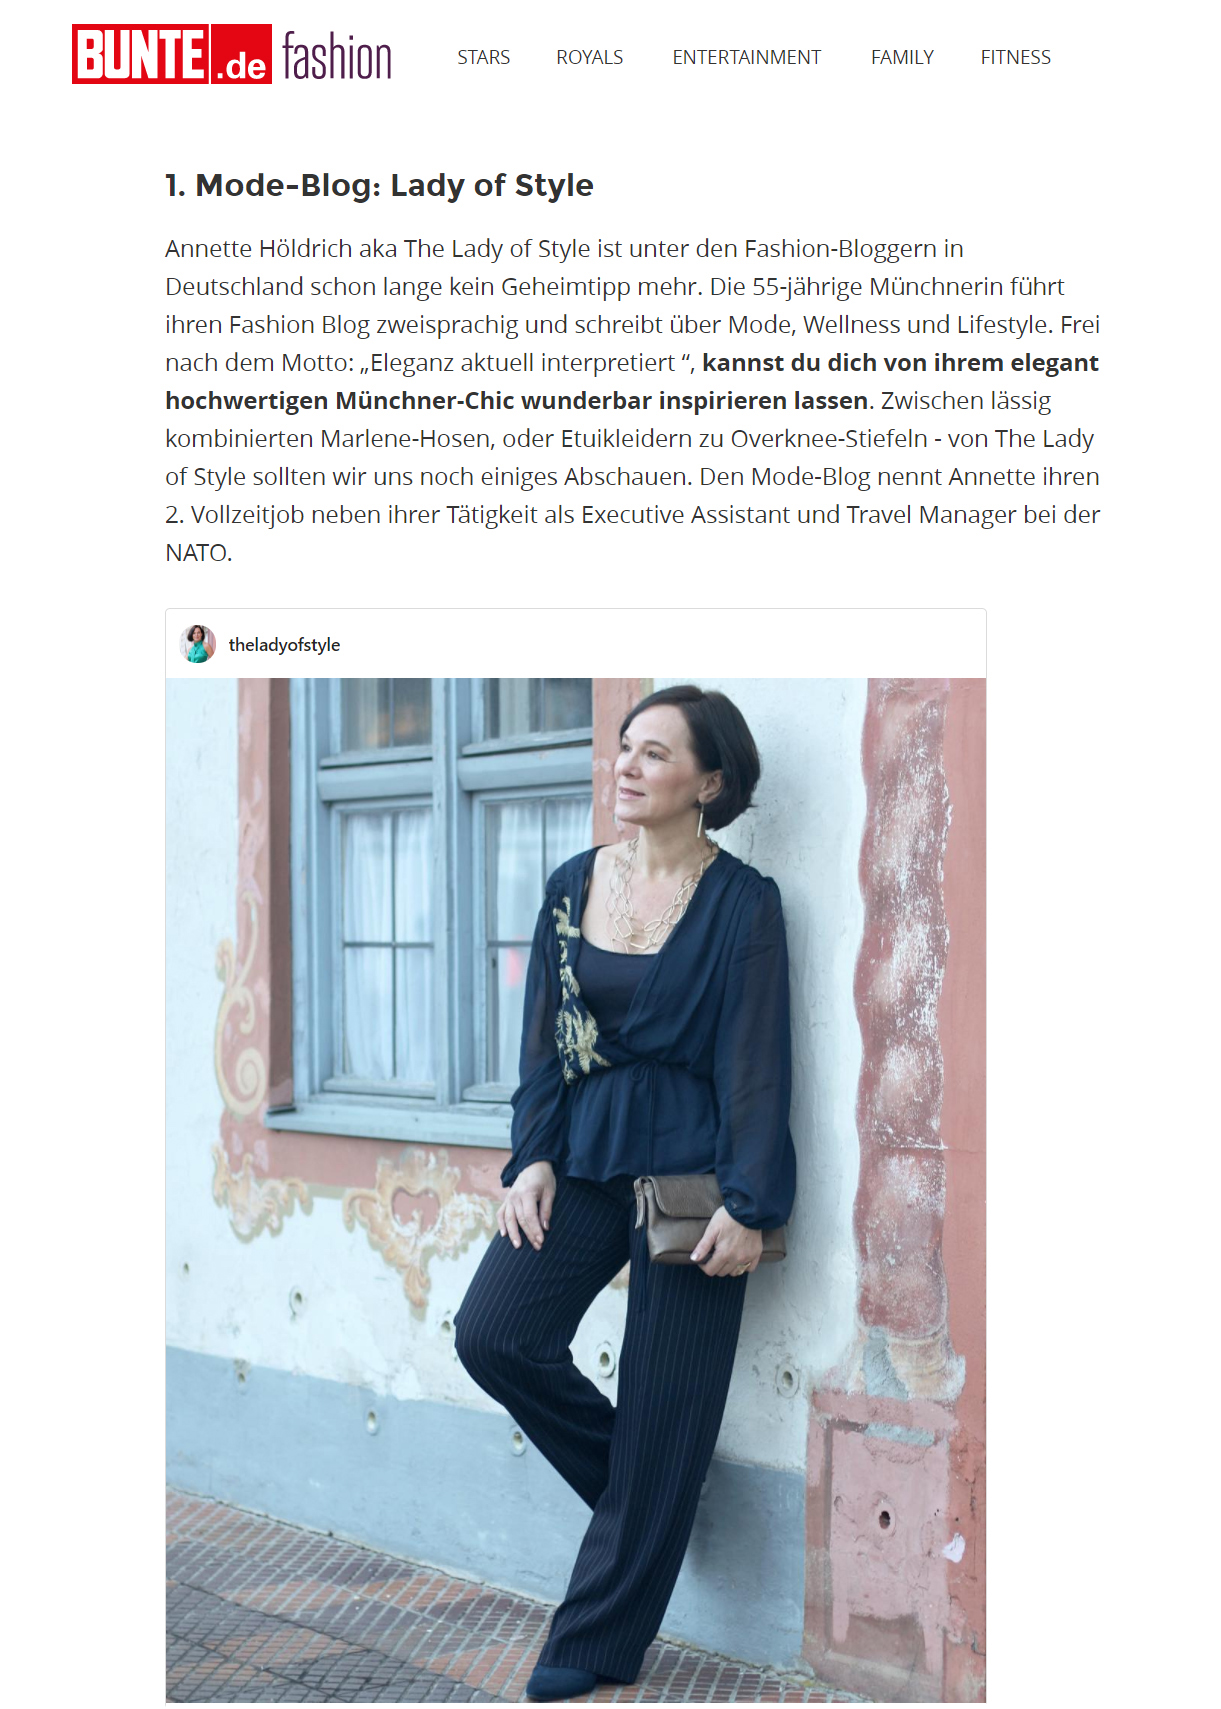 Lady of Style | BUNTE | Fashion Inspiration - Deutschlands stylishste Mode Bloggerinnen über 40